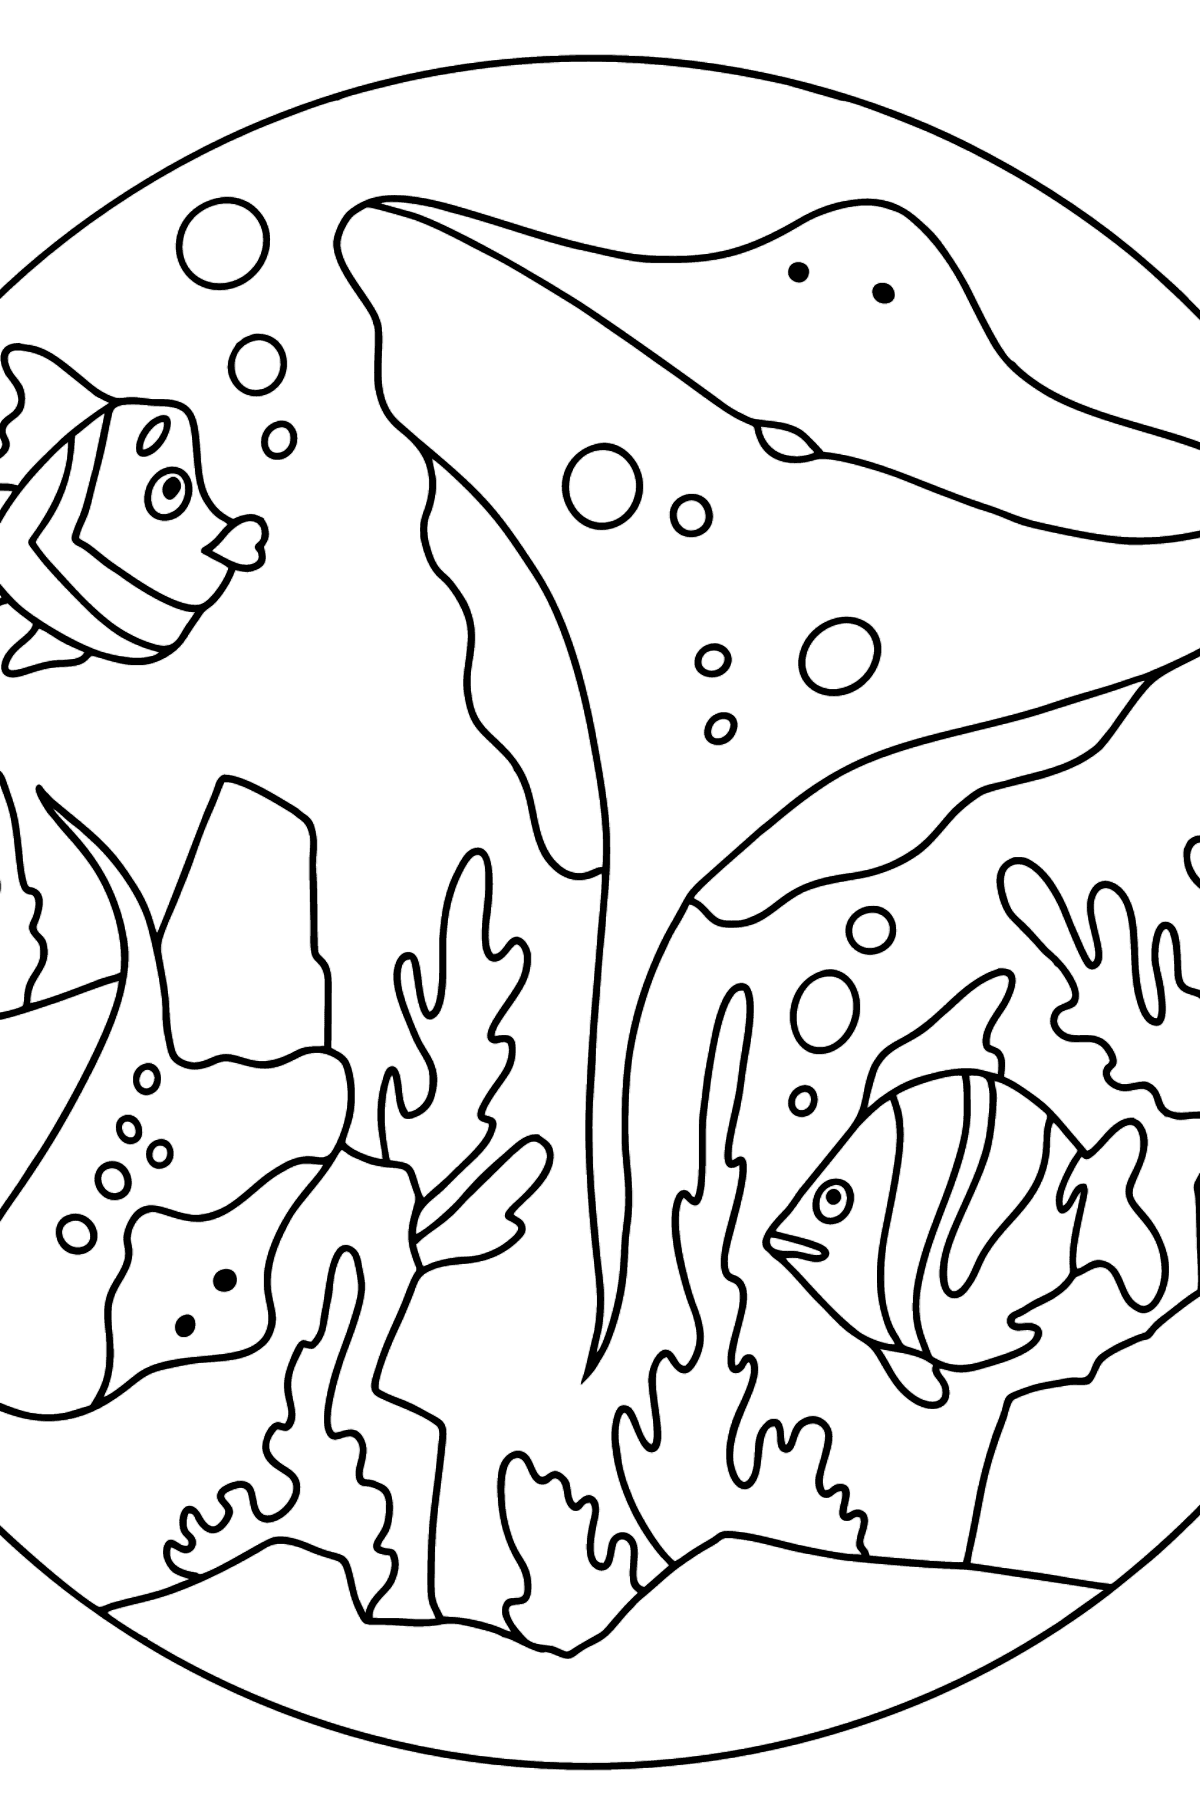 Coloring Page - Fish are Swimming past a Ray - Coloring Pages for Kids